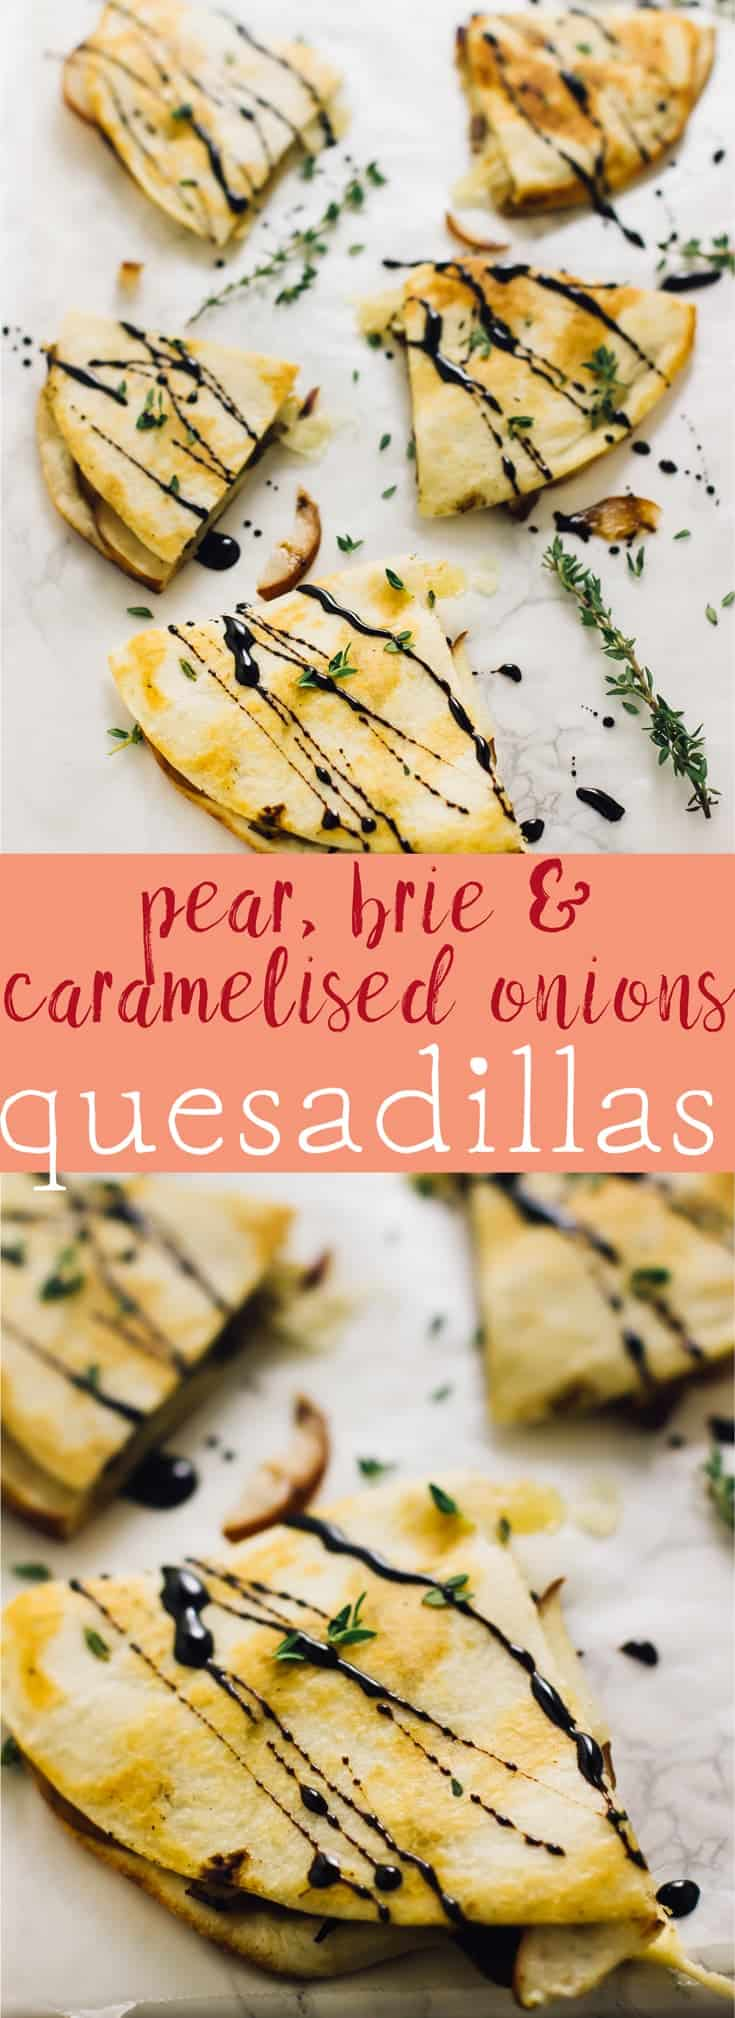 These Pear Brie & Caramelised Onions Quesadillas are drizzled with a balsamic glaze that make it the ultimate fall quick meal! via https://jessicainthekitchen.com